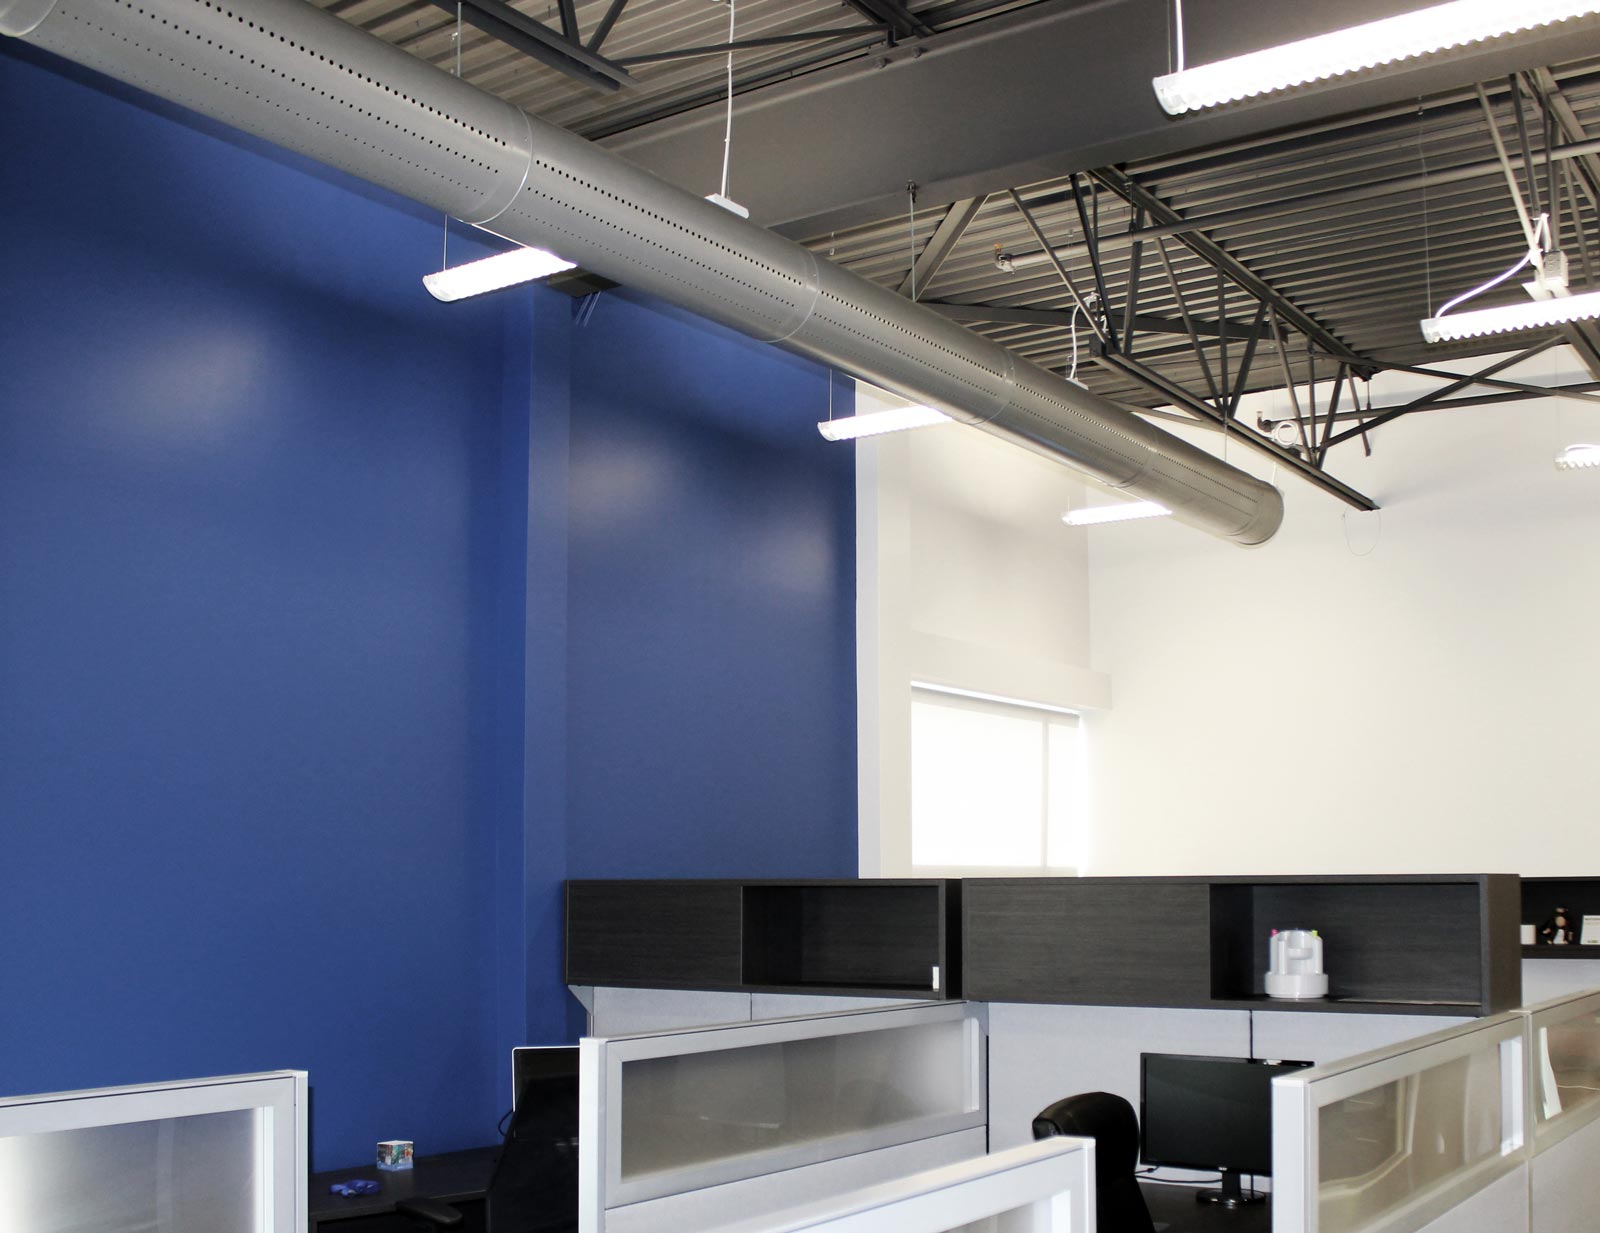 Photo of Prihoda rigid duct installed, with background of royal blue wall